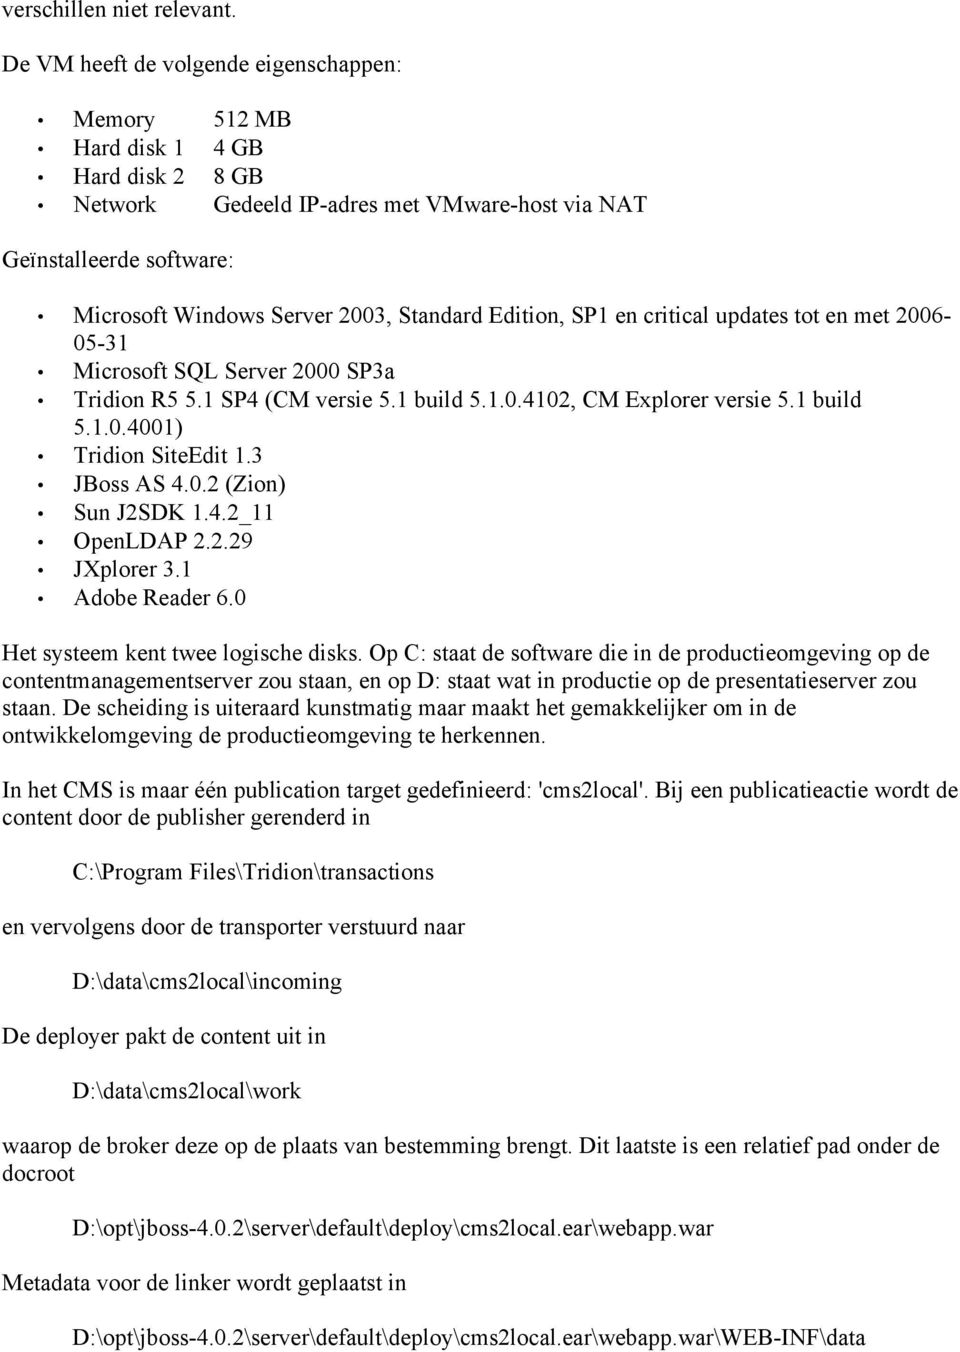 Standard Edition, SP1 en critical updates tot en met 2006-05-31 Microsoft SQL Server 2000 SP3a Tridion R5 5.1 SP4 (CM versie 5.1 build 5.1.0.4102, CM Explorer versie 5.1 build 5.1.0.4001) Tridion SiteEdit 1.